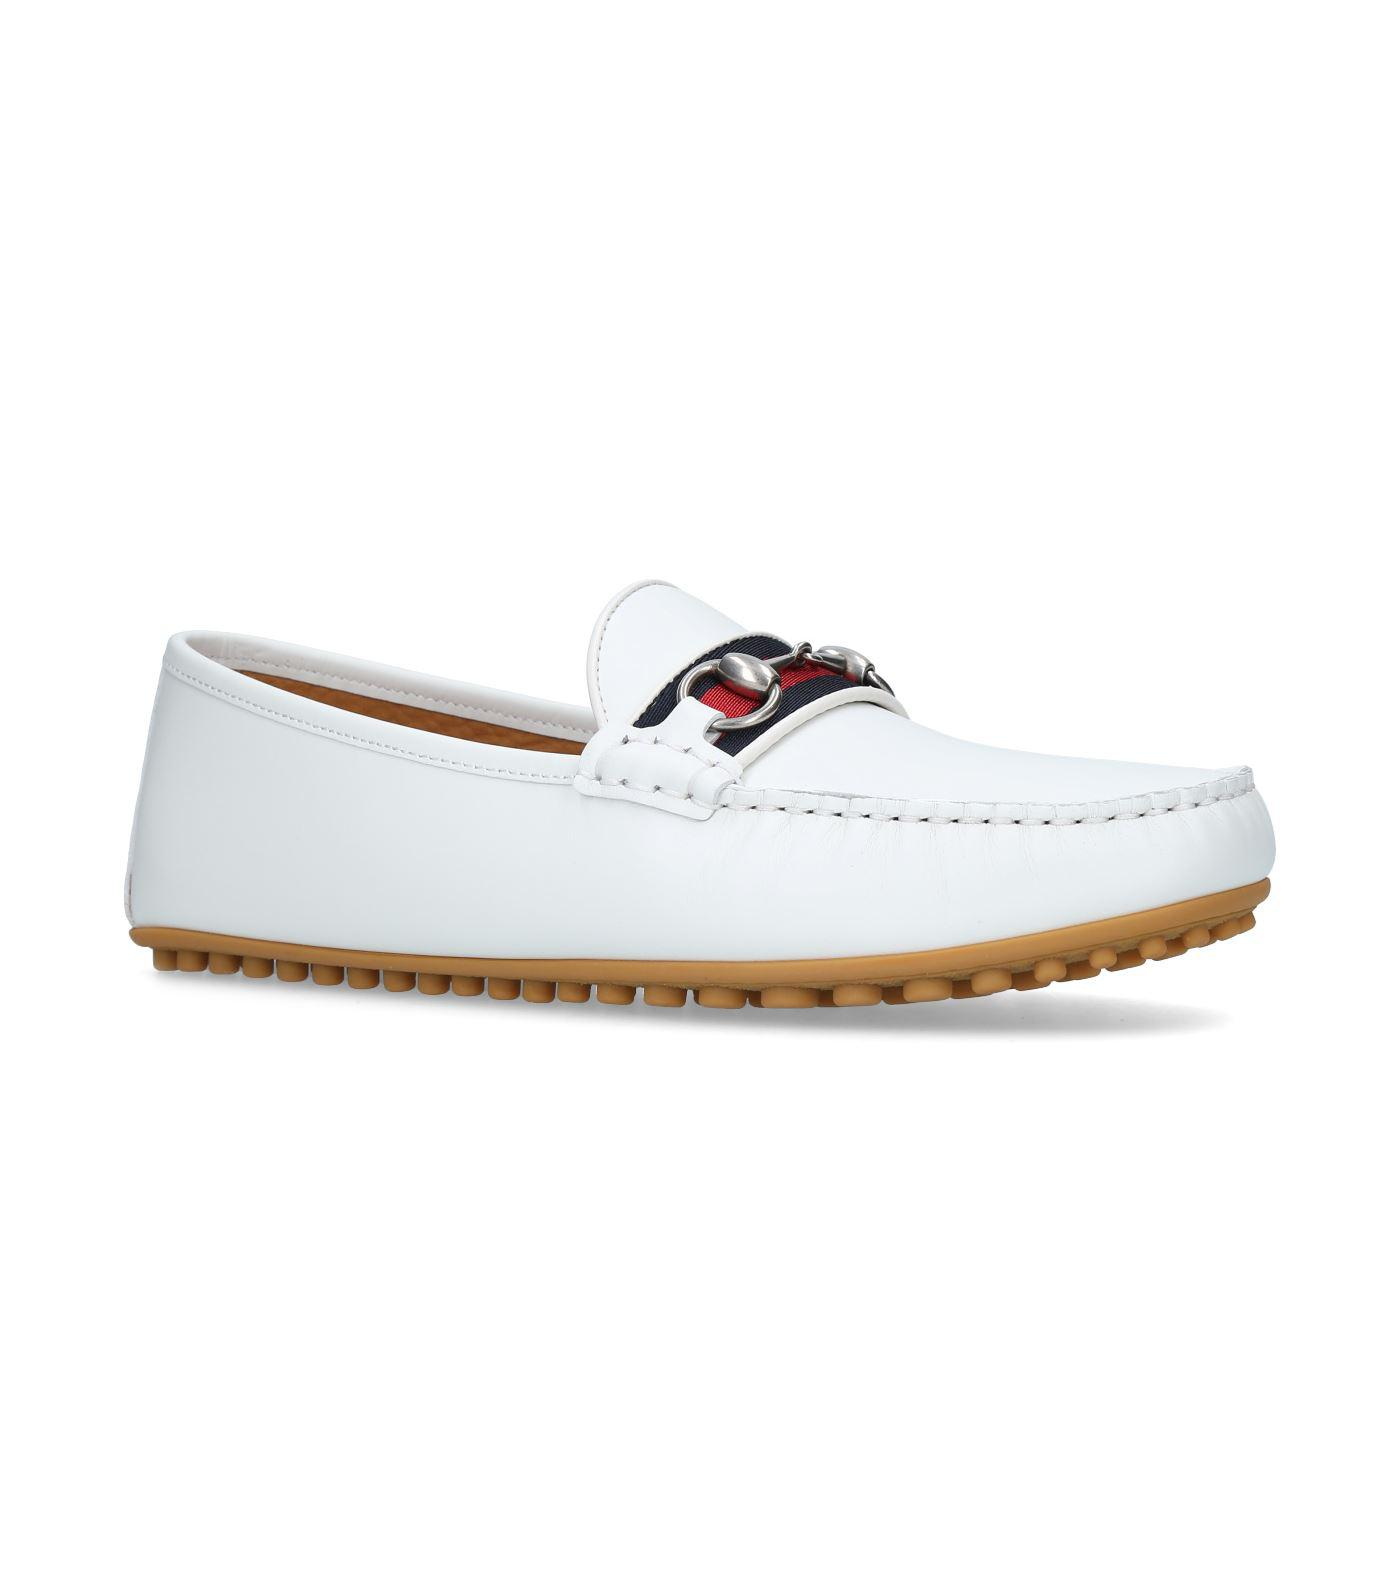 e43e8ed9e3d Lyst - Gucci Kanye Leather Driving Shoes in White for Men - Save 16%